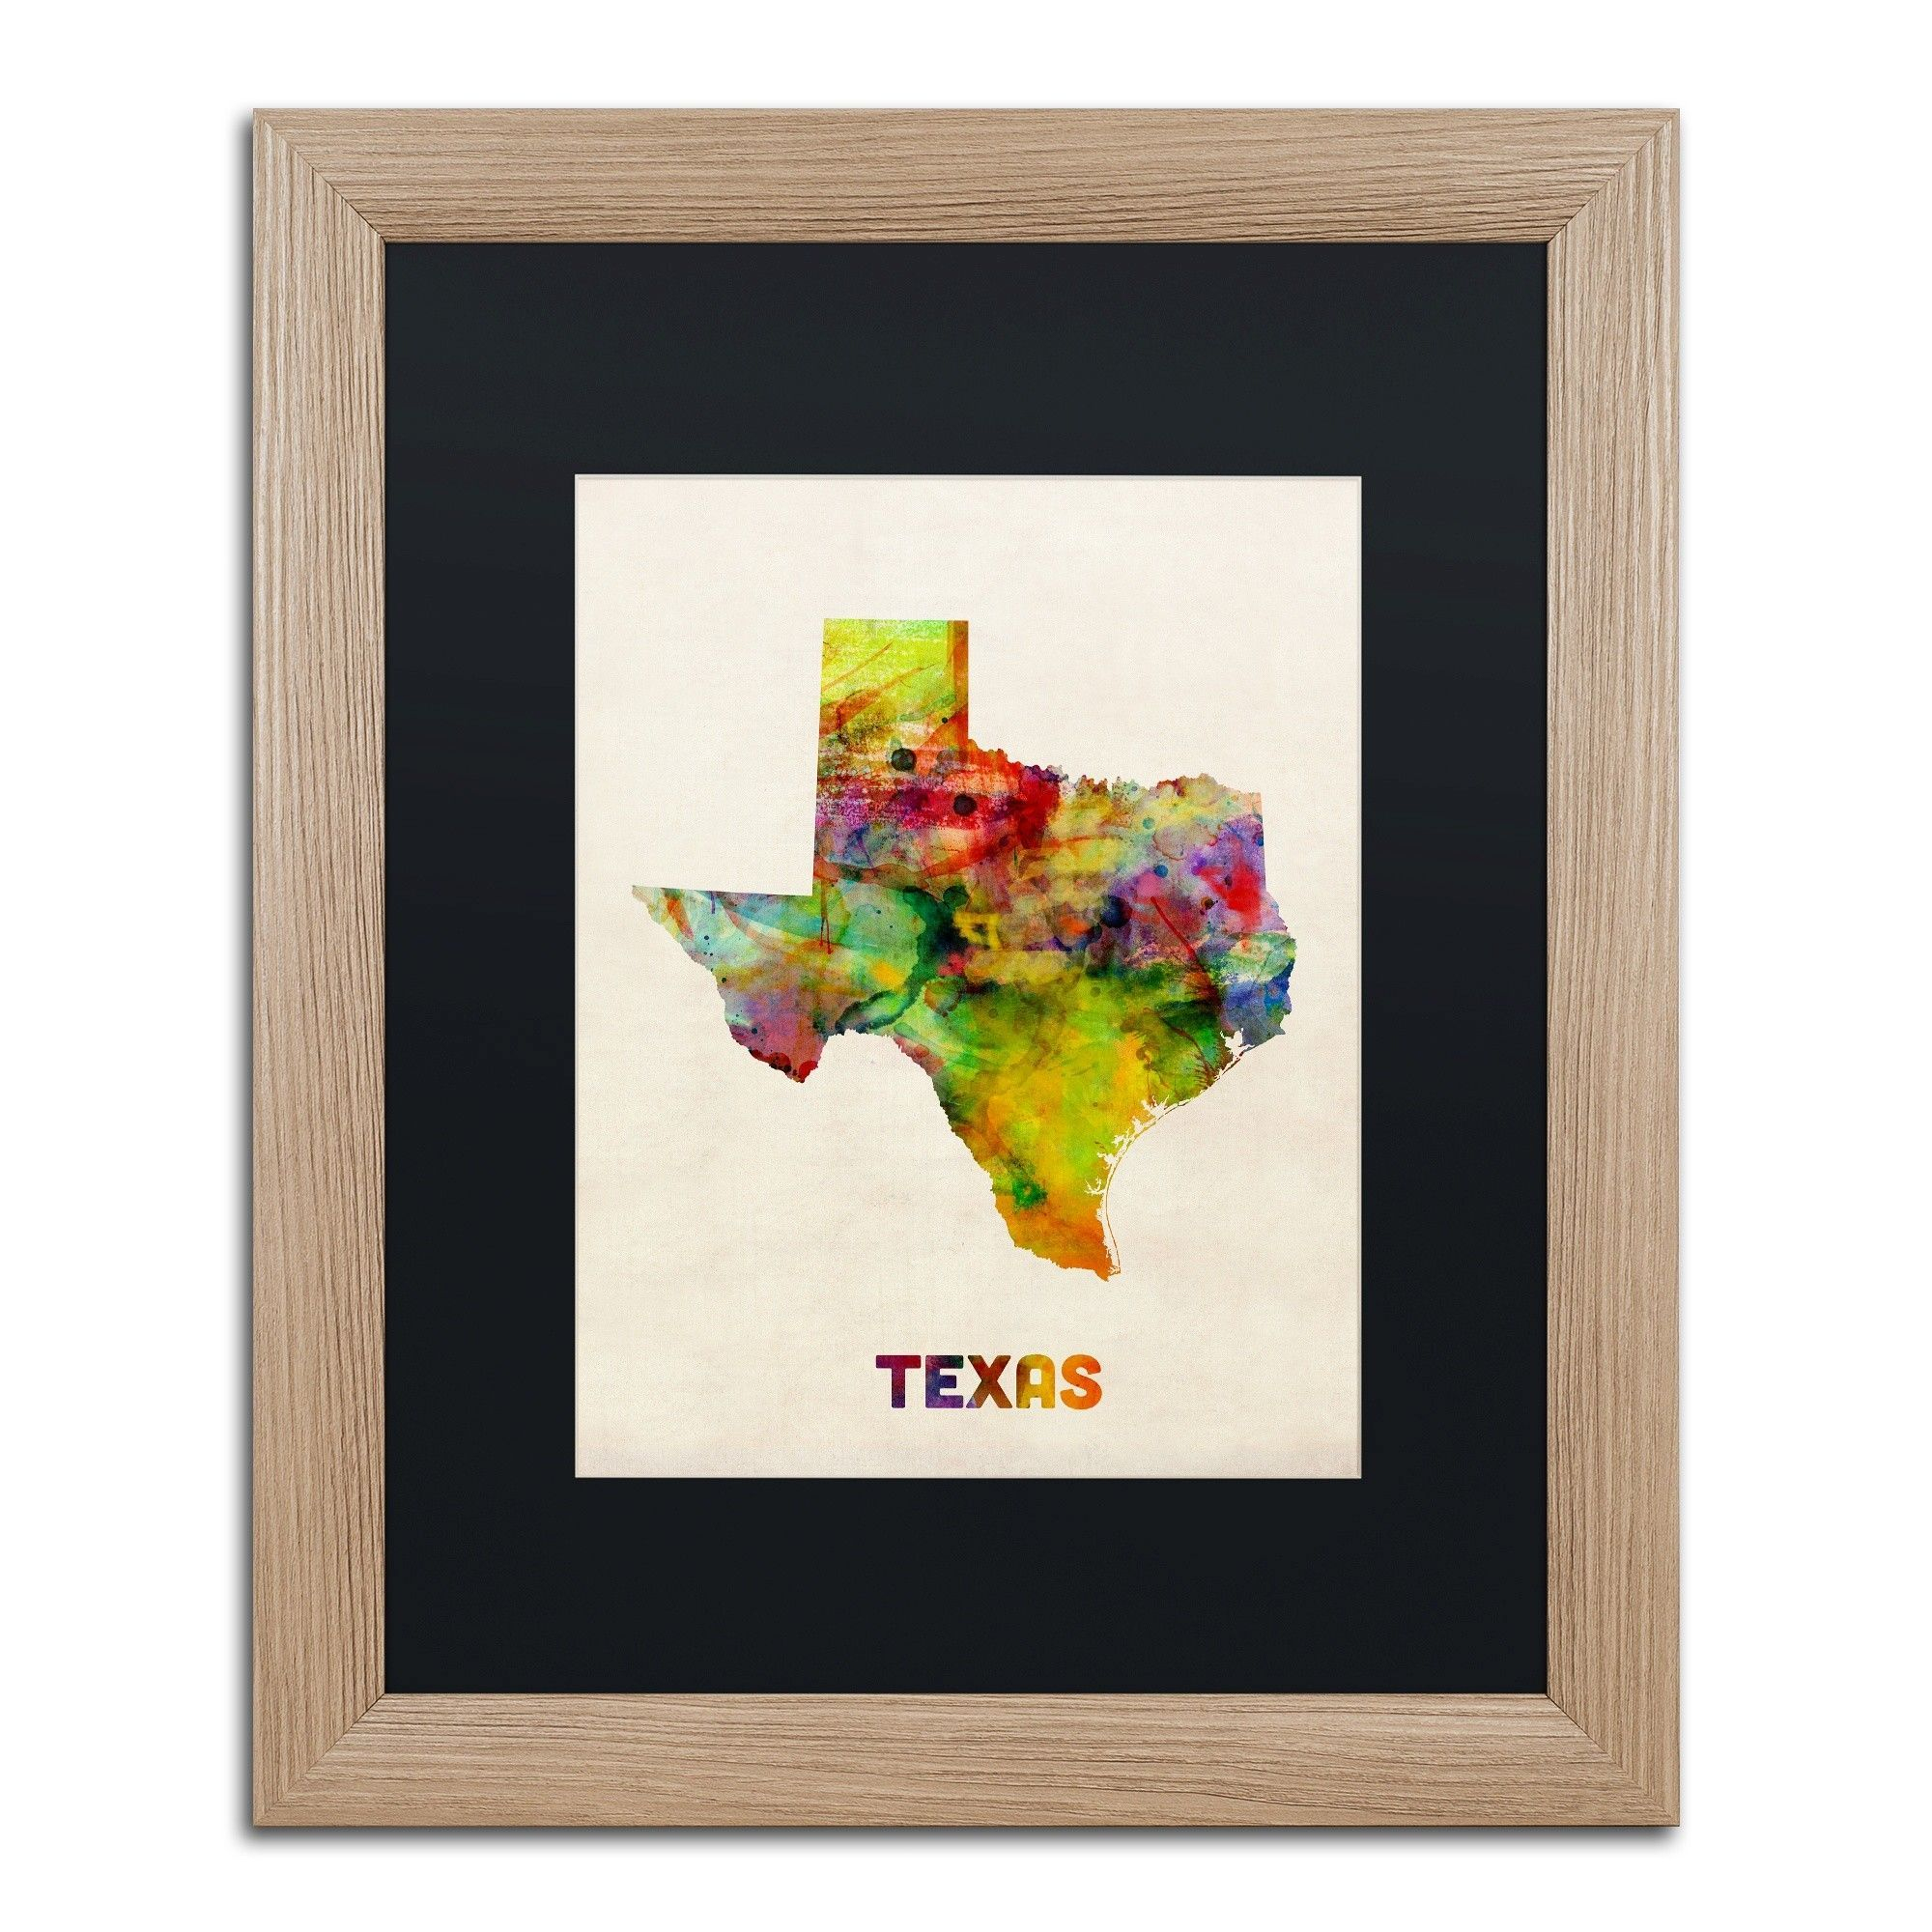 Texas Mapmichael Tompsett Framed Graphic Art | Graphic Art And - Texas Map Framed Art